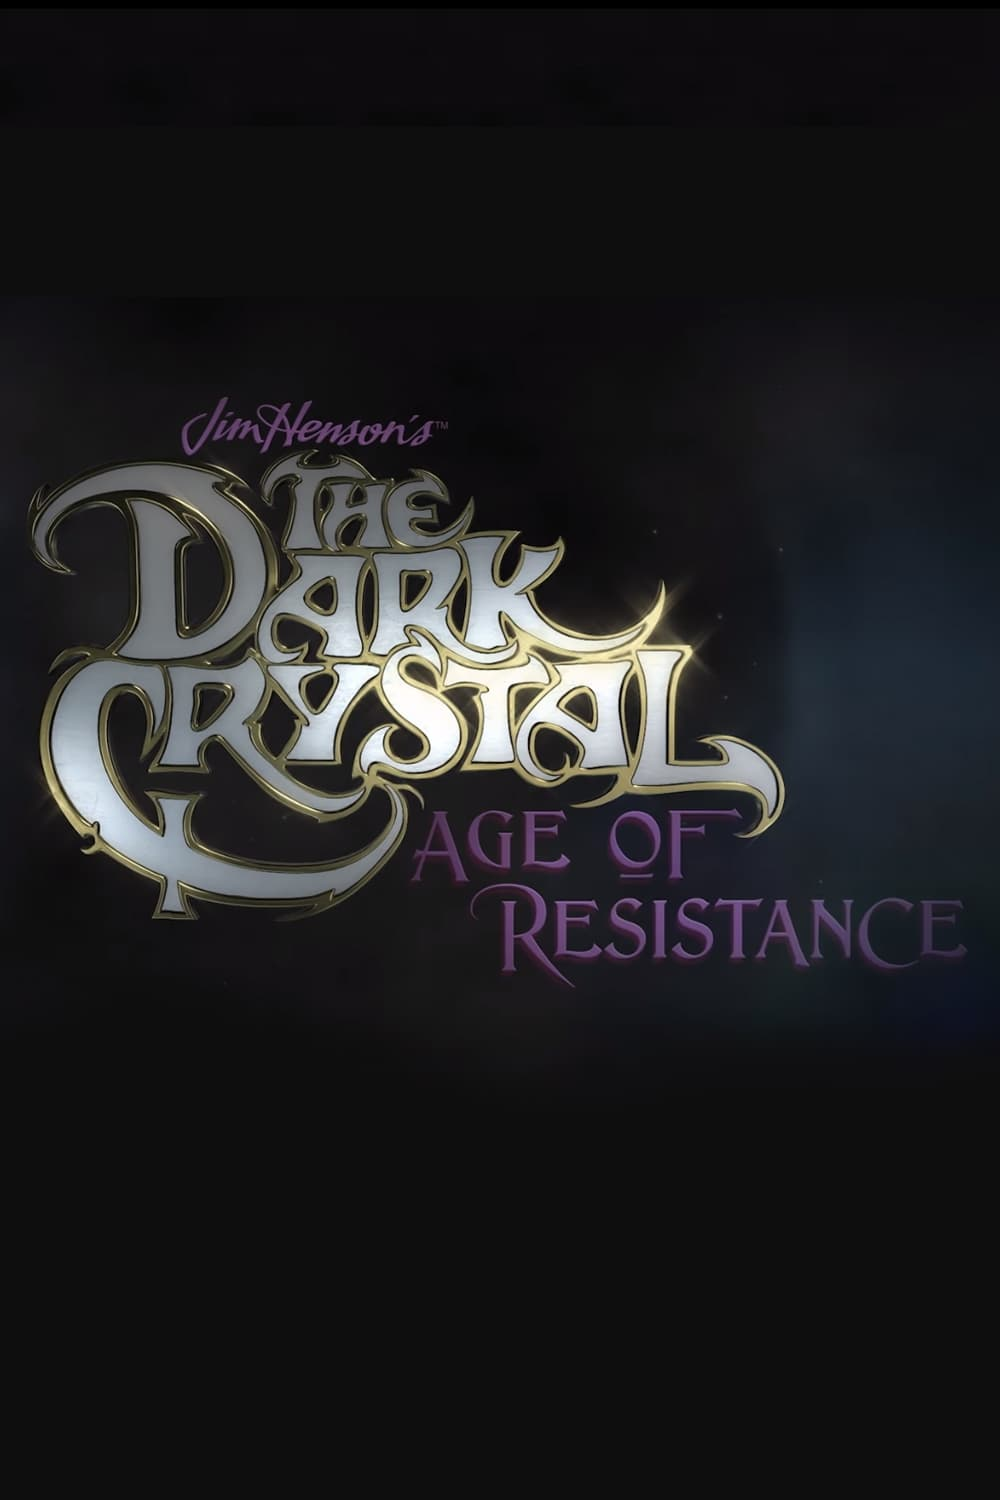 watch The Dark Crystal: Age of Resistance series 2019 online free